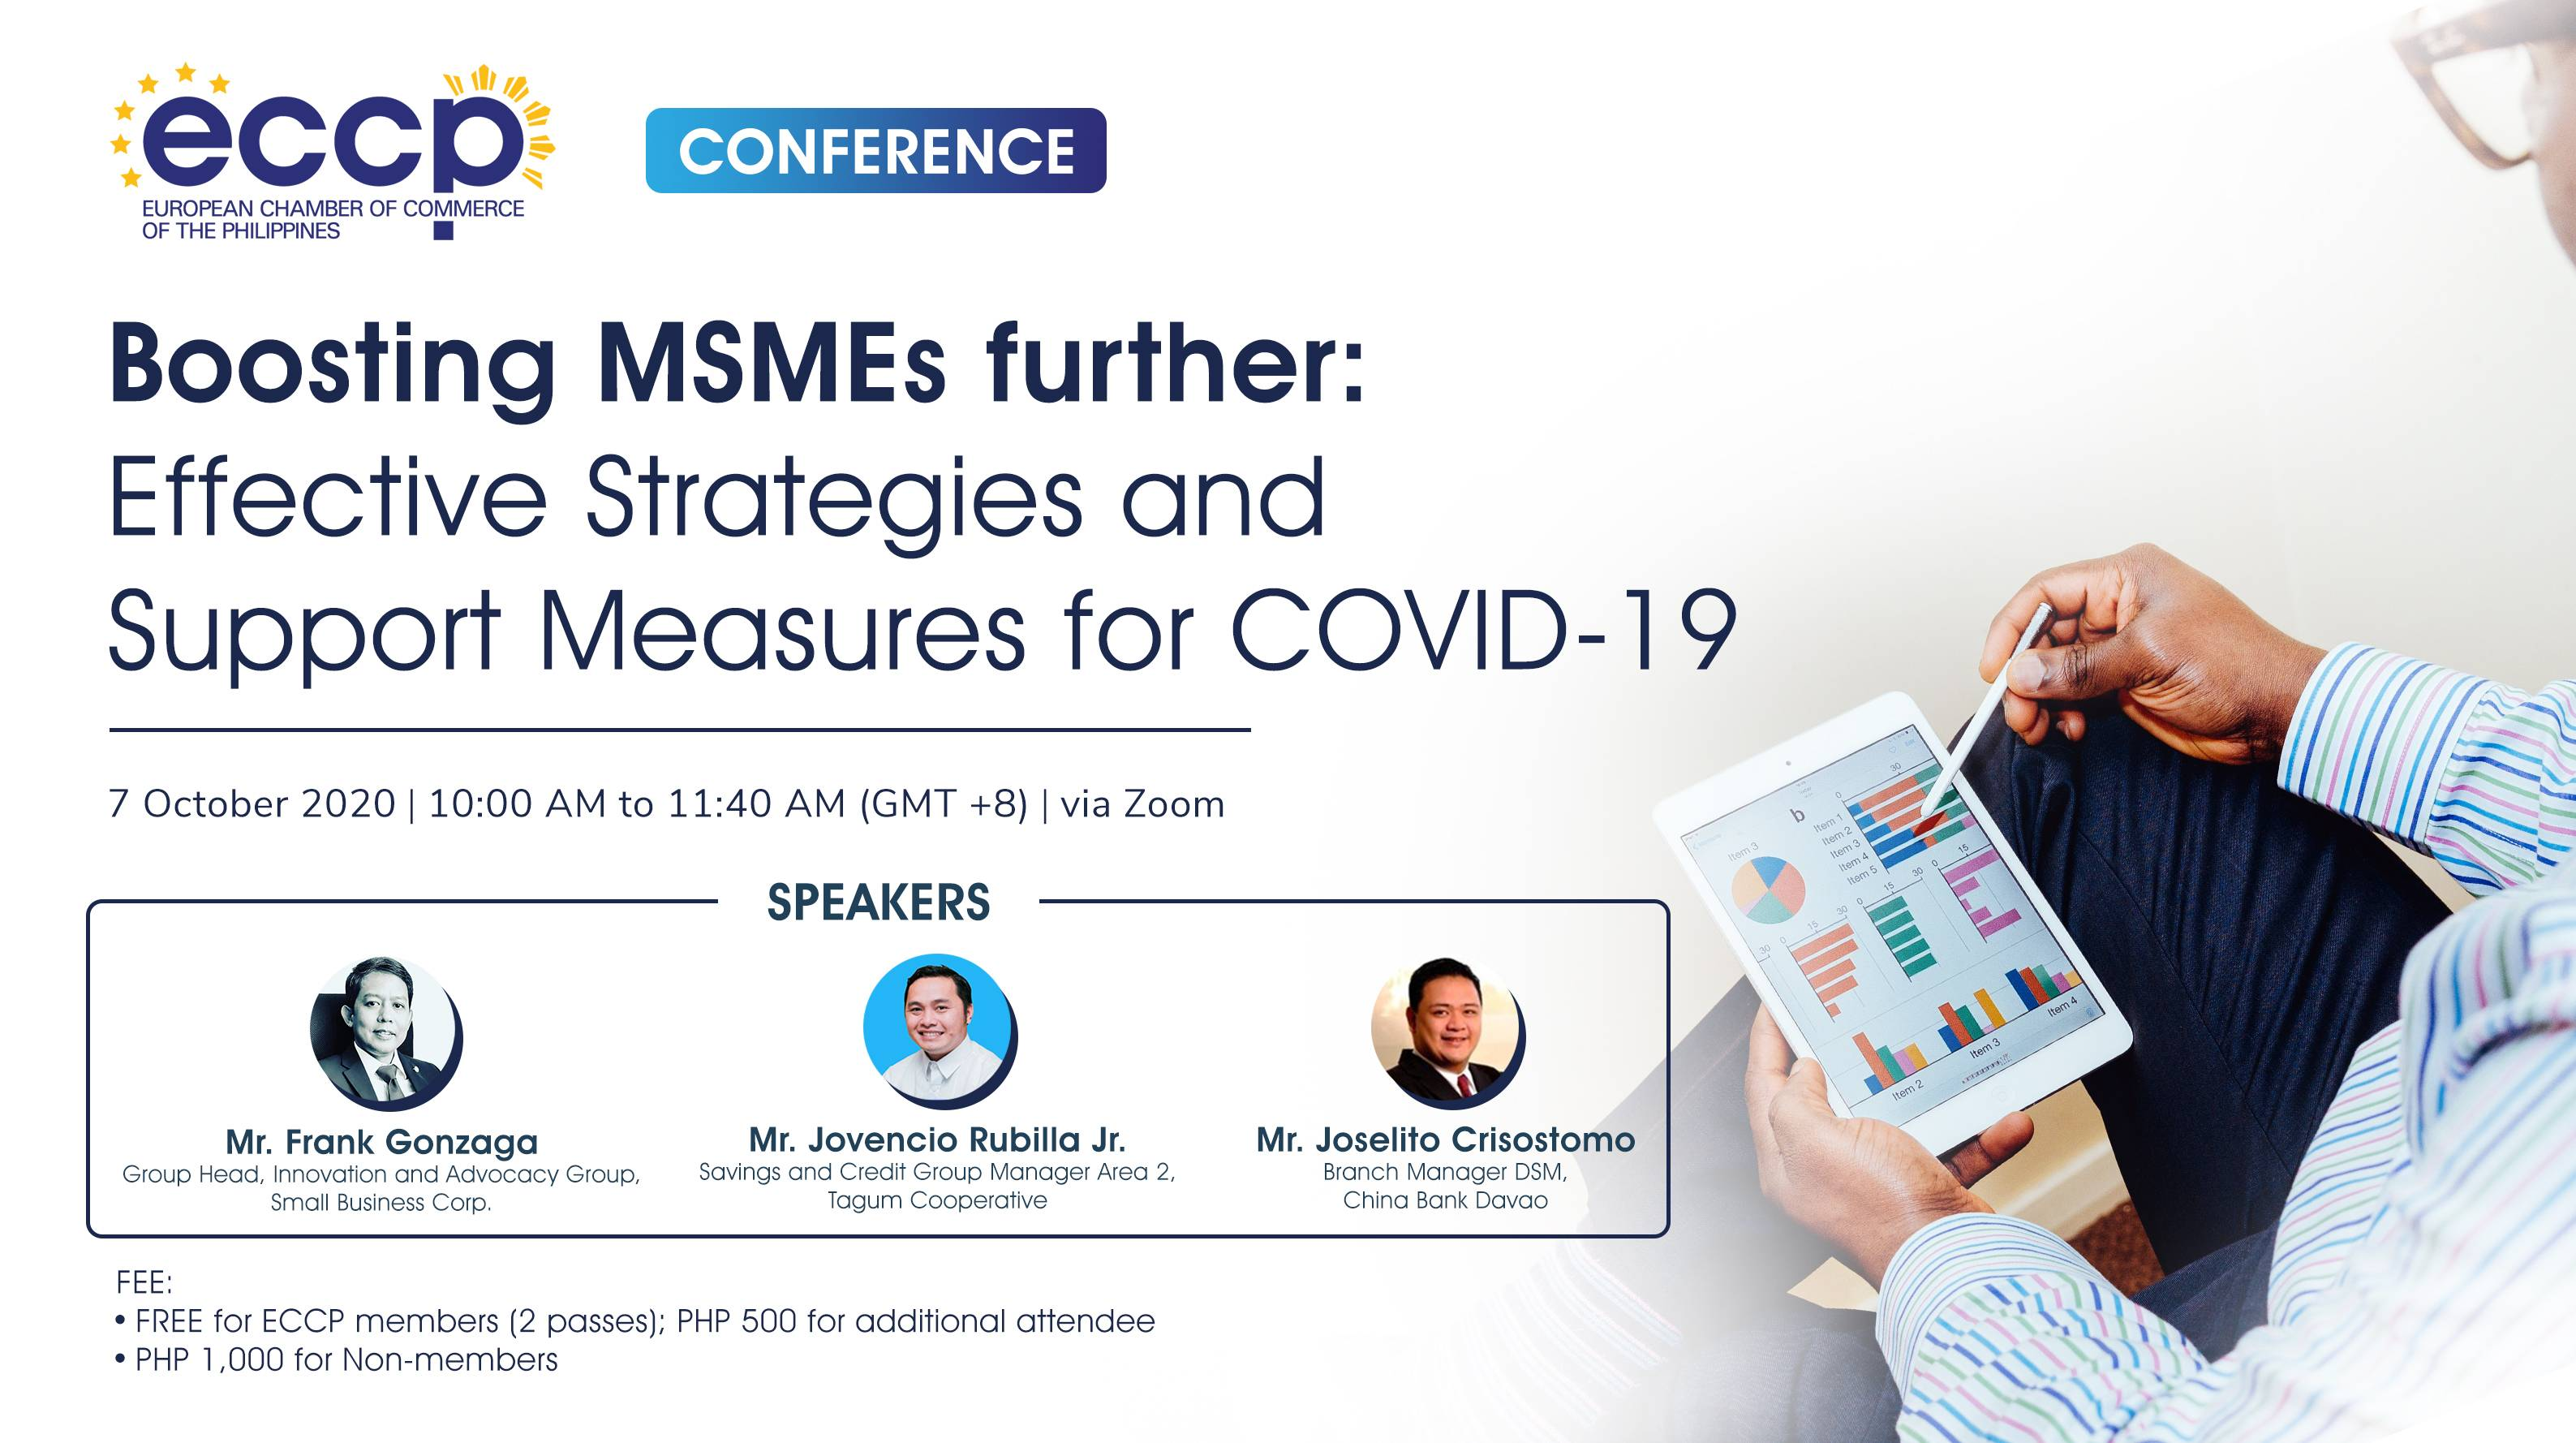 Boosting MSMEs further: Effective Strategies and Support Measures for COVID-19